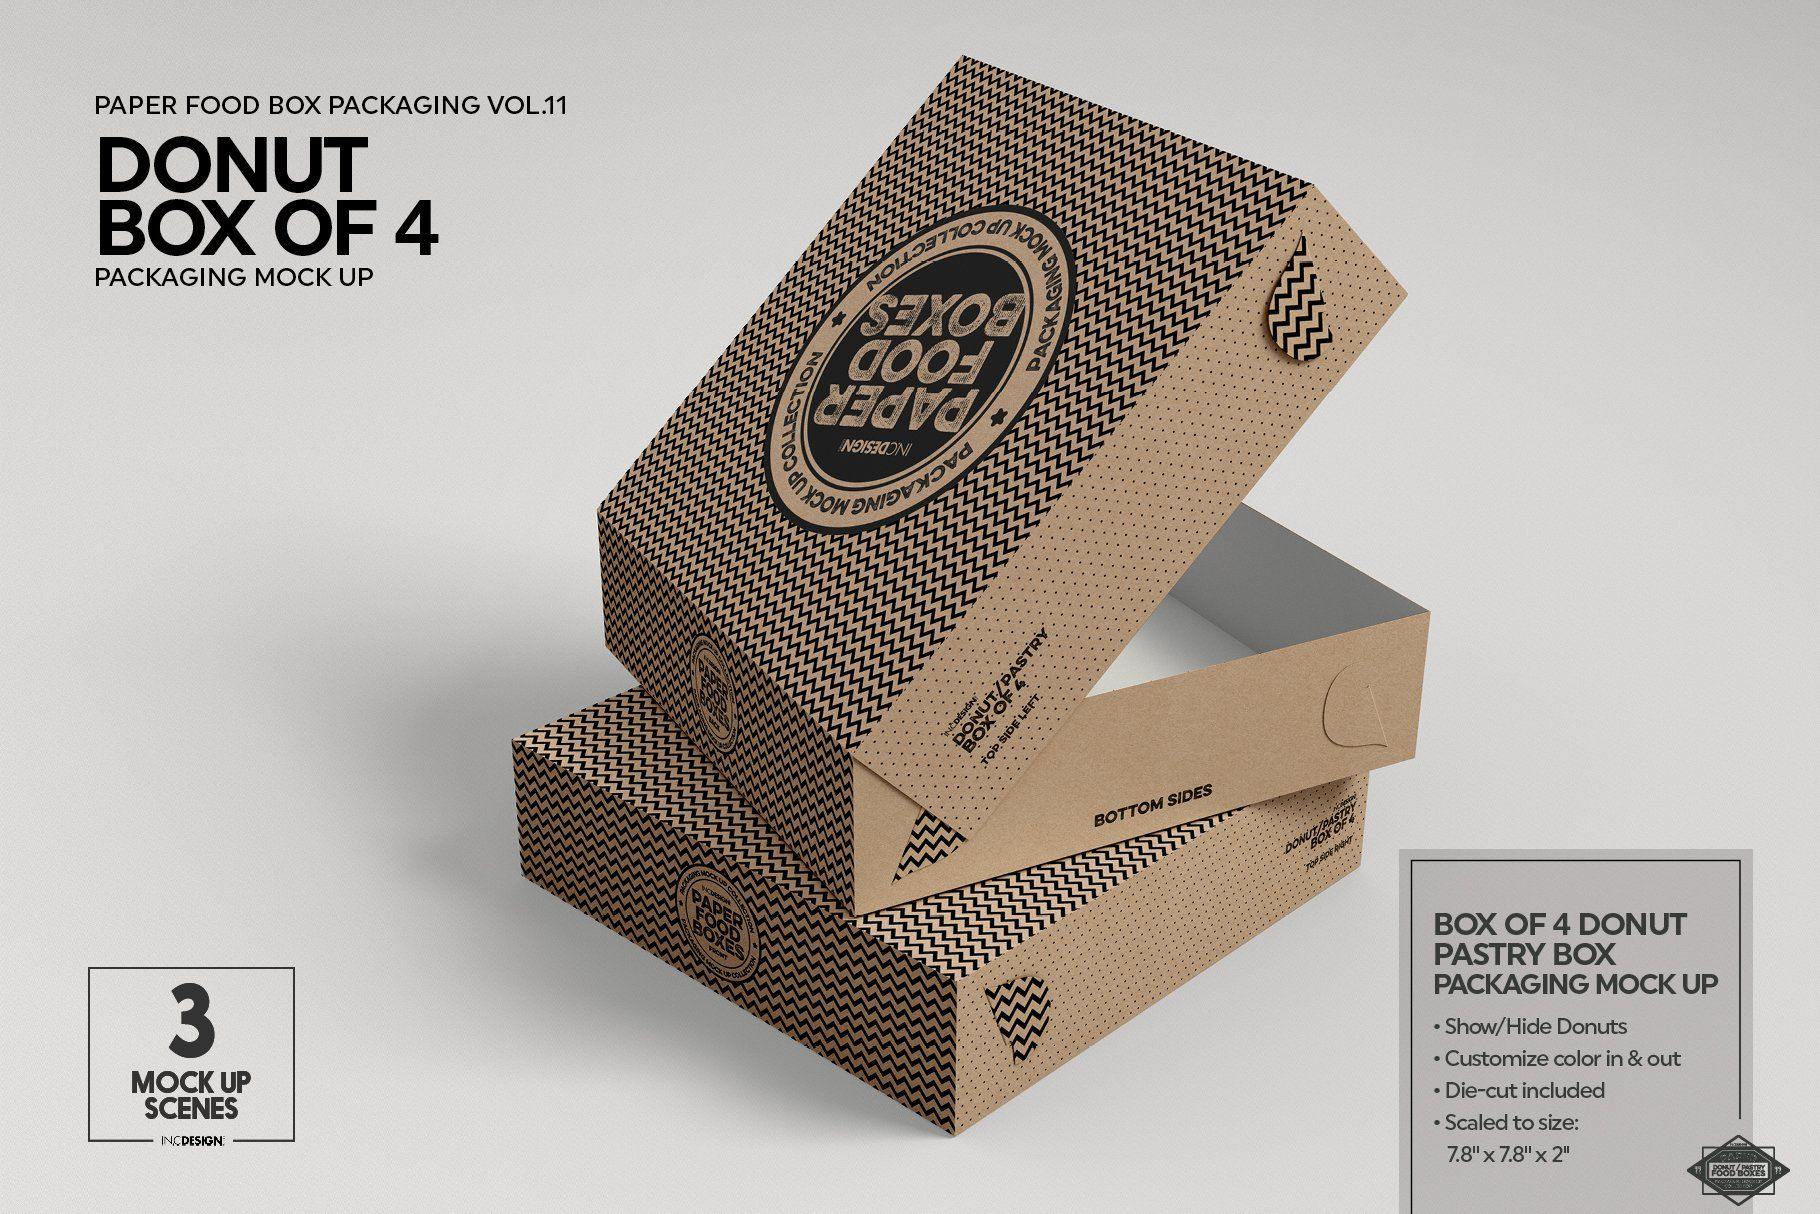 Download Box Of Four Donut Pastry Box Mockup Packaging Mockup Food Box Packaging Box Mockup